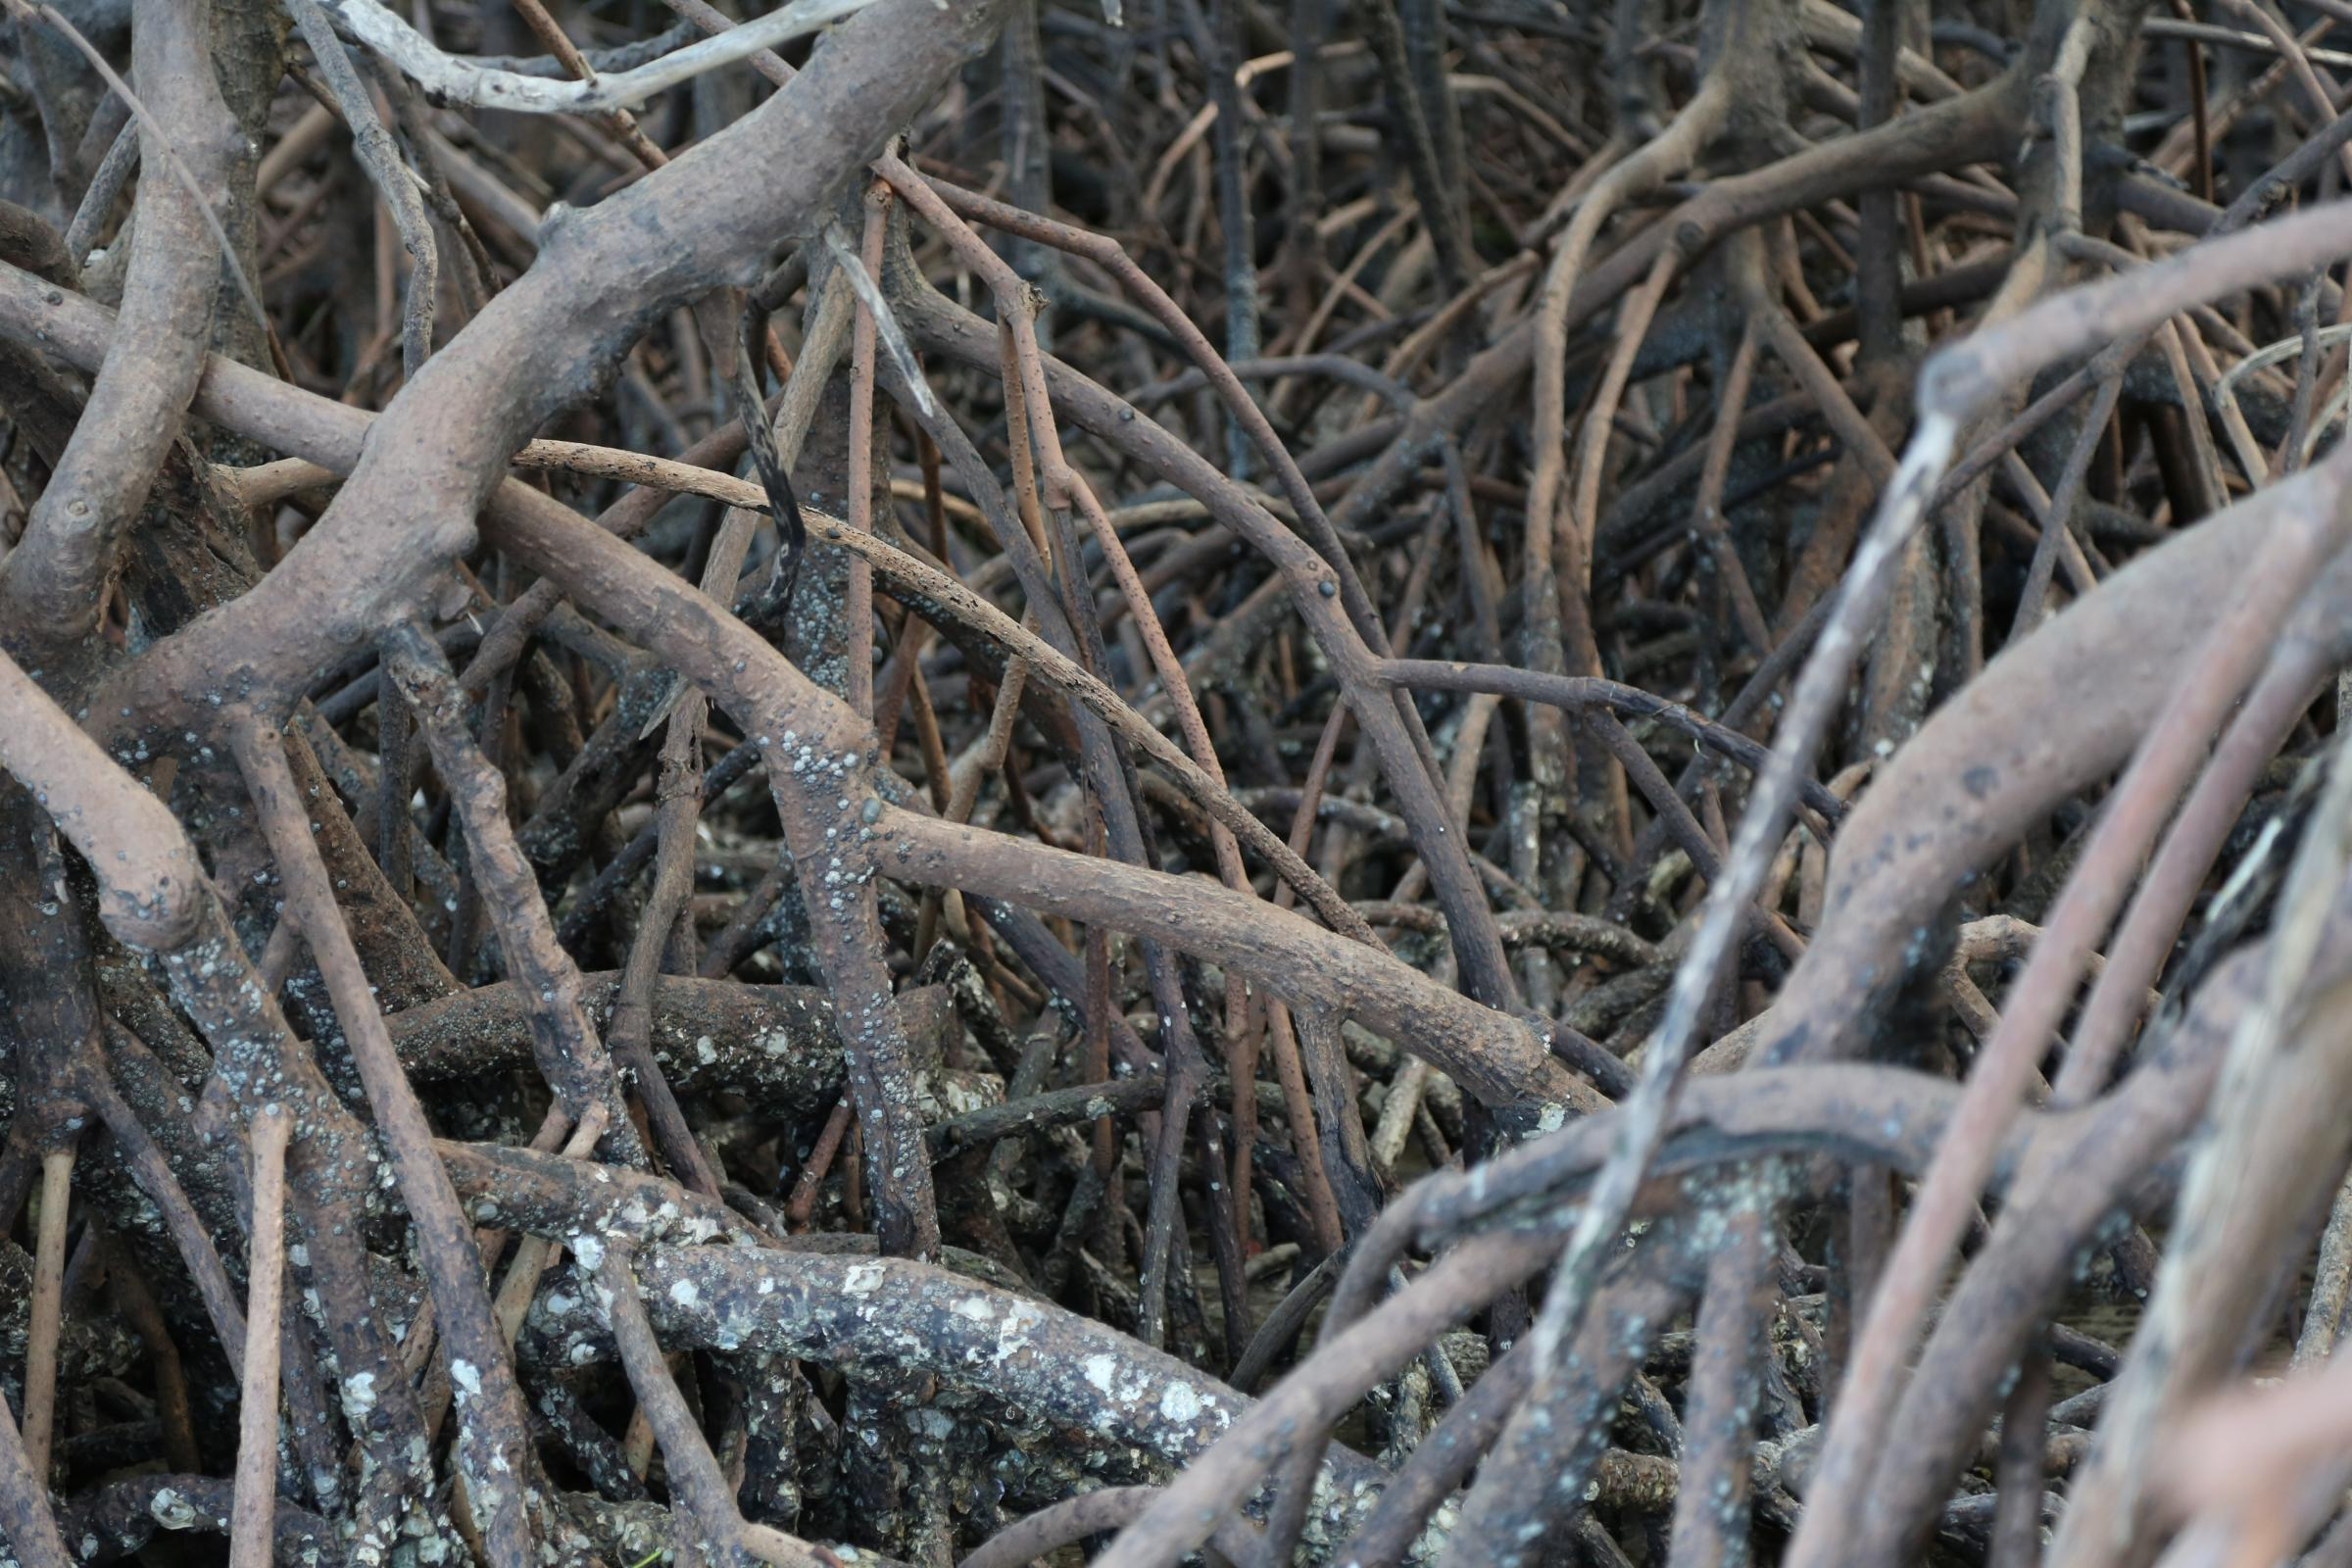 Mangroves roots, Yirrganydji Country, Port Douglas, Qld. (Photograph: Andrew Turner)